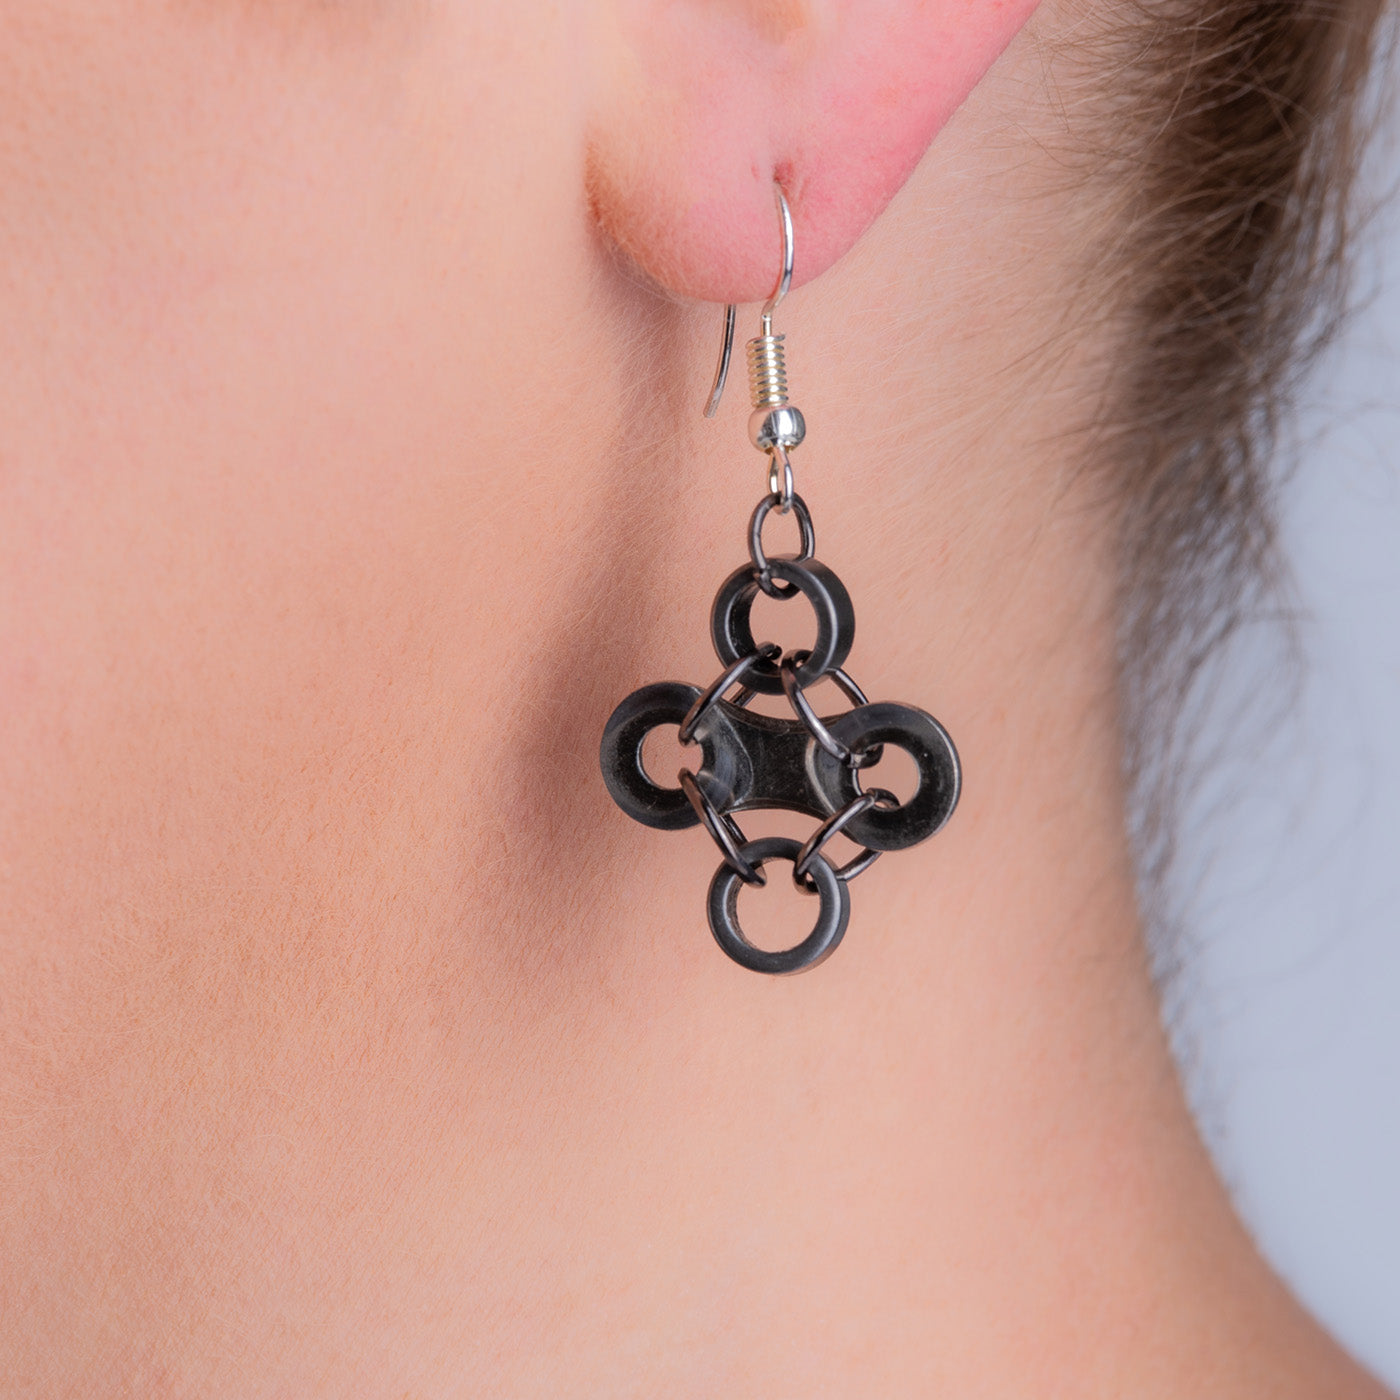 Diamond Stainless Steel Bicycle Chain Earrings by Paguro Upcycle